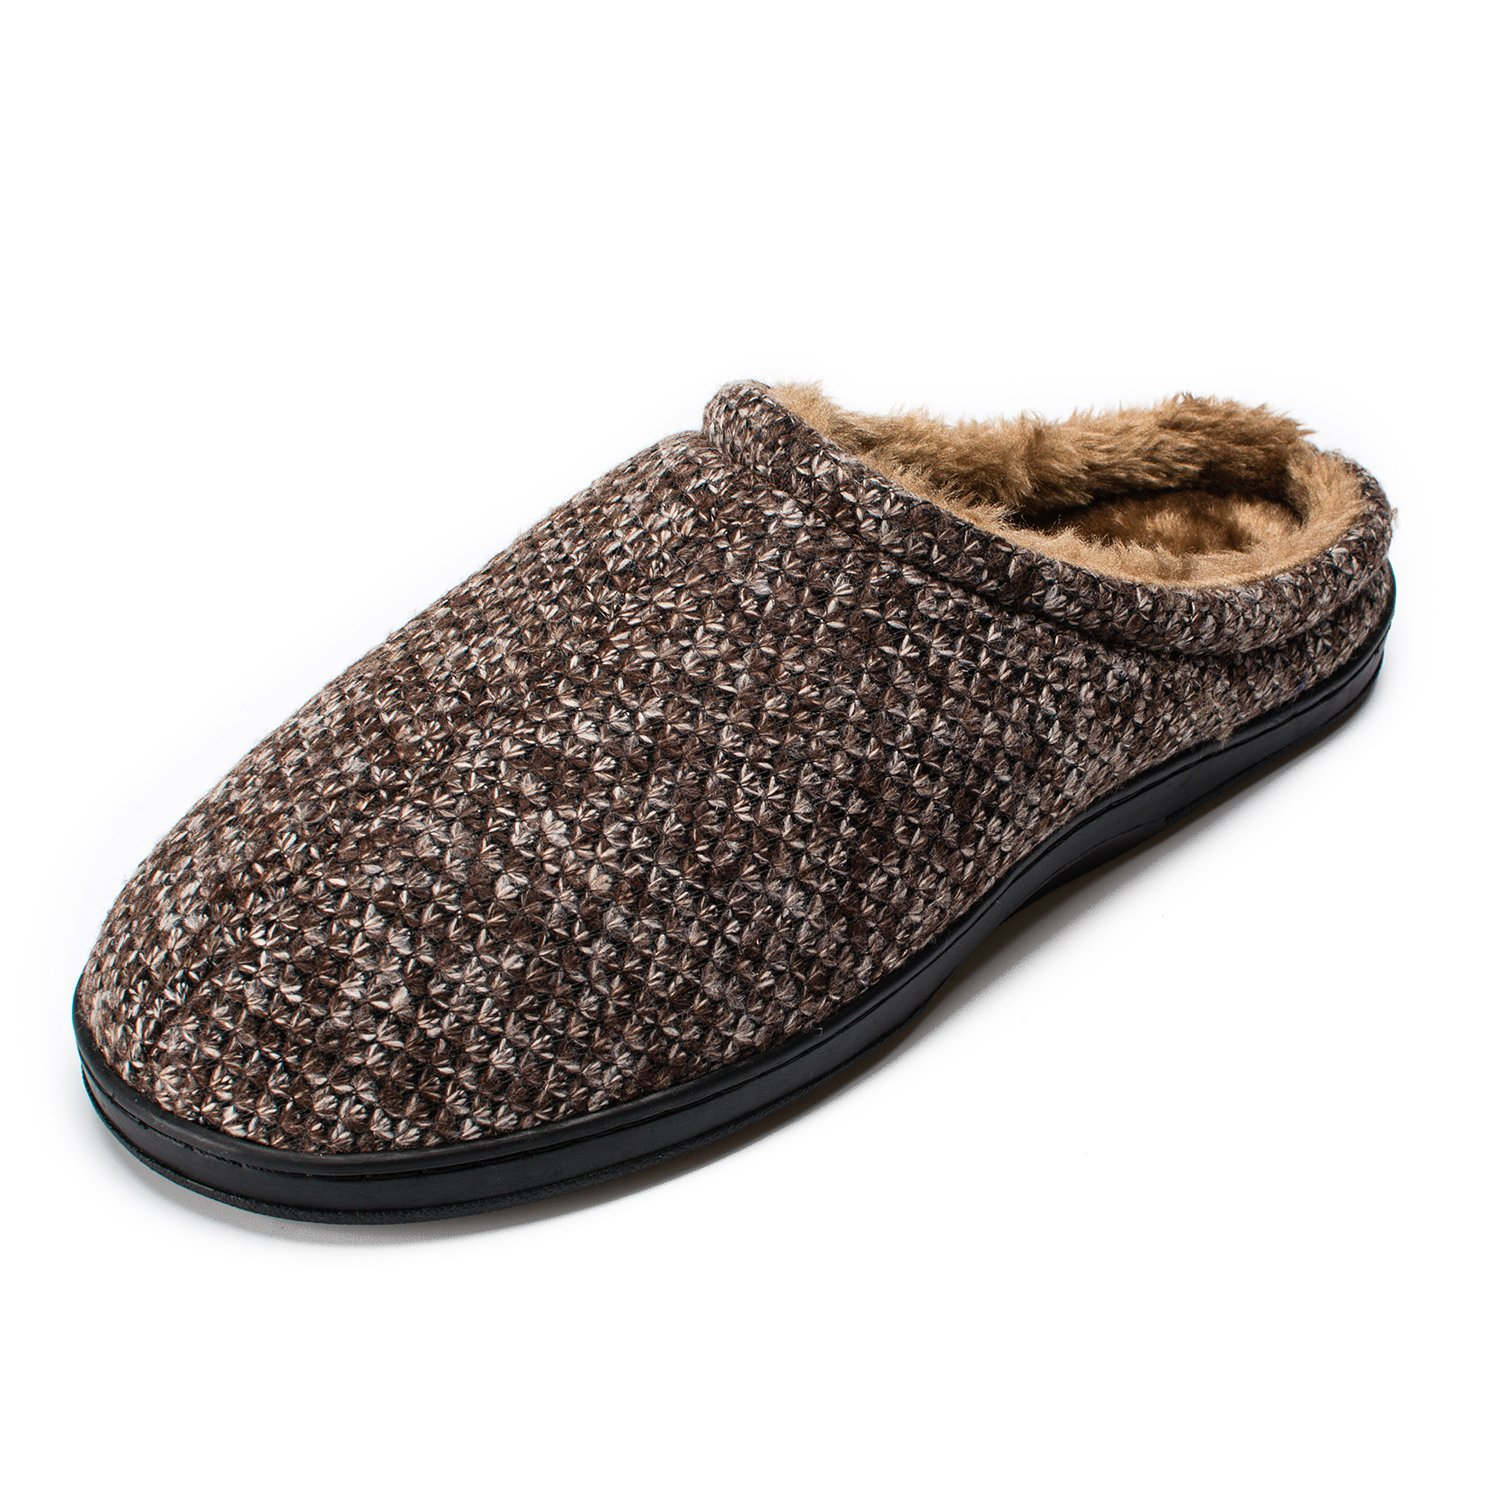 QXQY Mens Comfort Knitted Plush AntiSkid Sole House Slipper Indoor Shoes 11 D